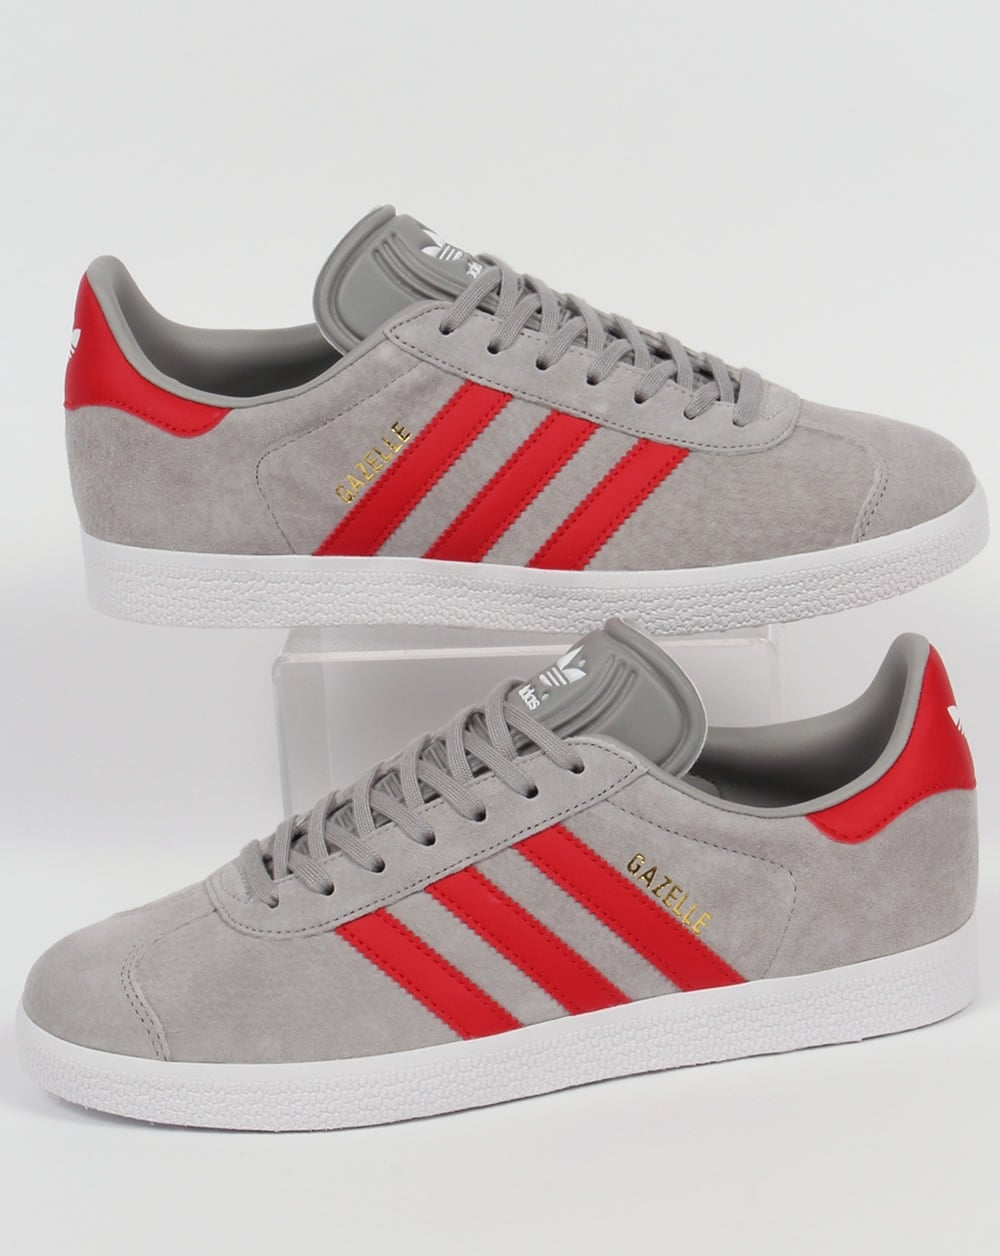 68d21248b638 adidas Trainers Adidas Gazelle Trainers Solid Grey Red